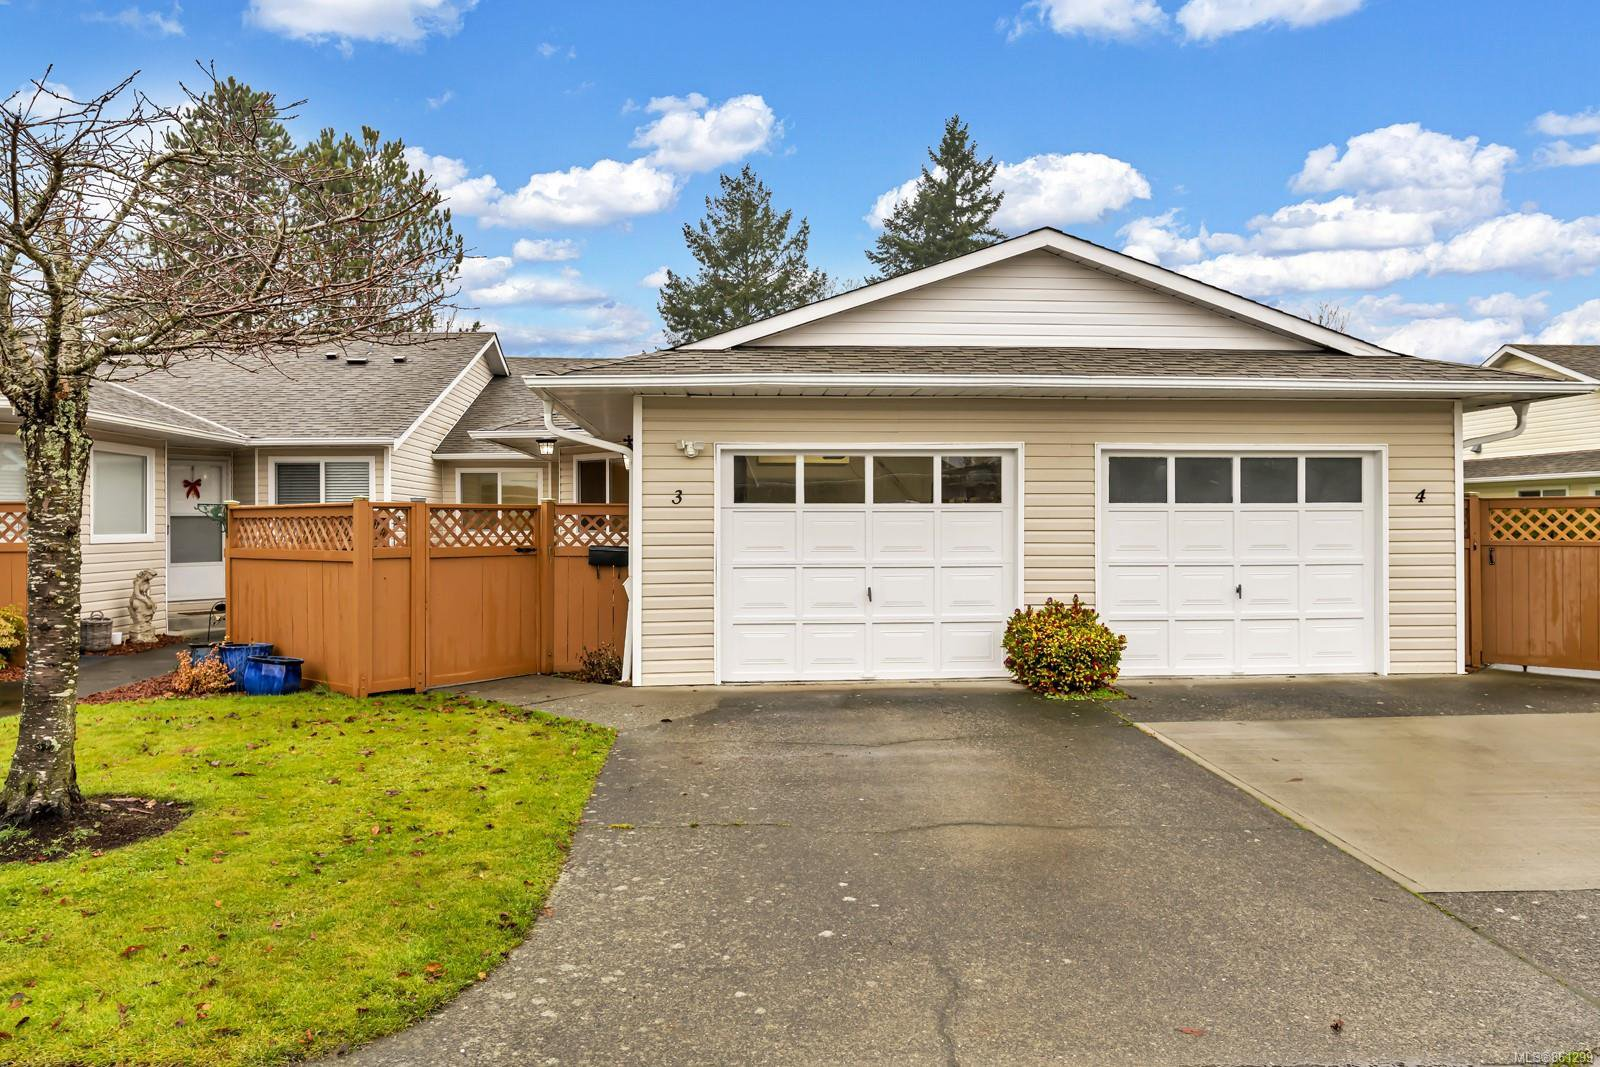 Main Photo: 3 4125 Interurban Rd in : SW Northridge Row/Townhouse for sale (Saanich West)  : MLS®# 861299